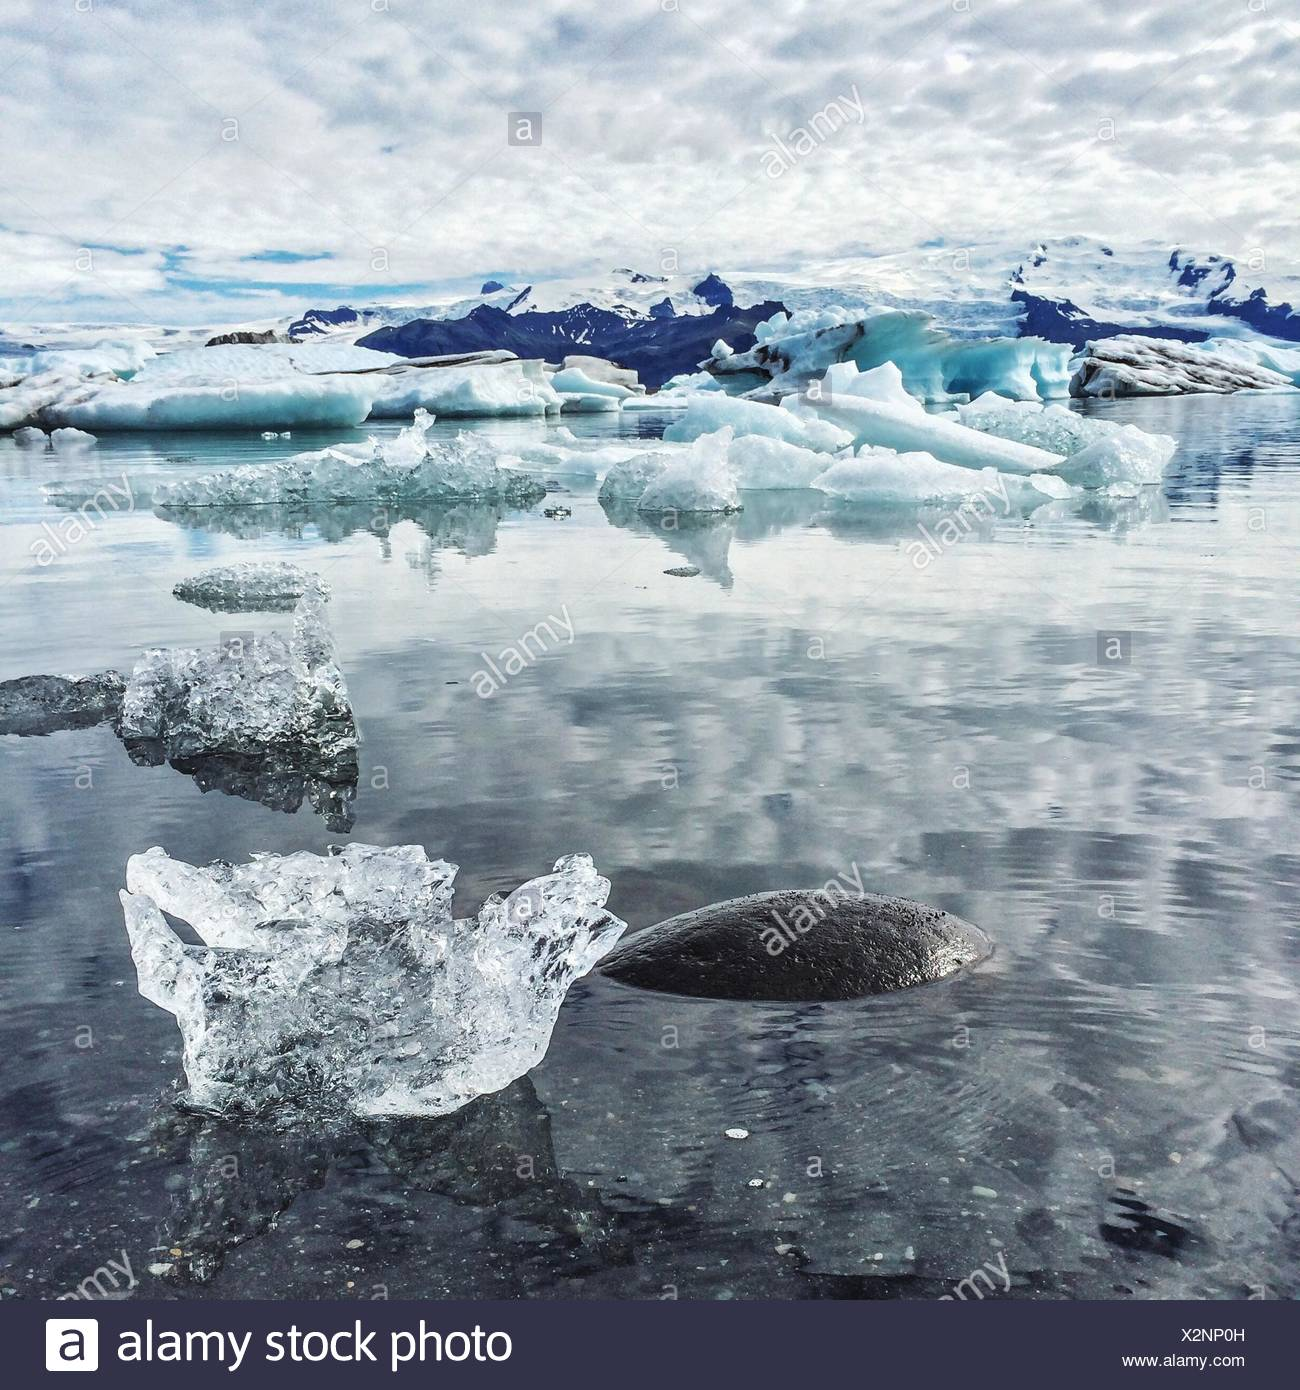 Glaciers Floating On Water In Lake - Stock Image